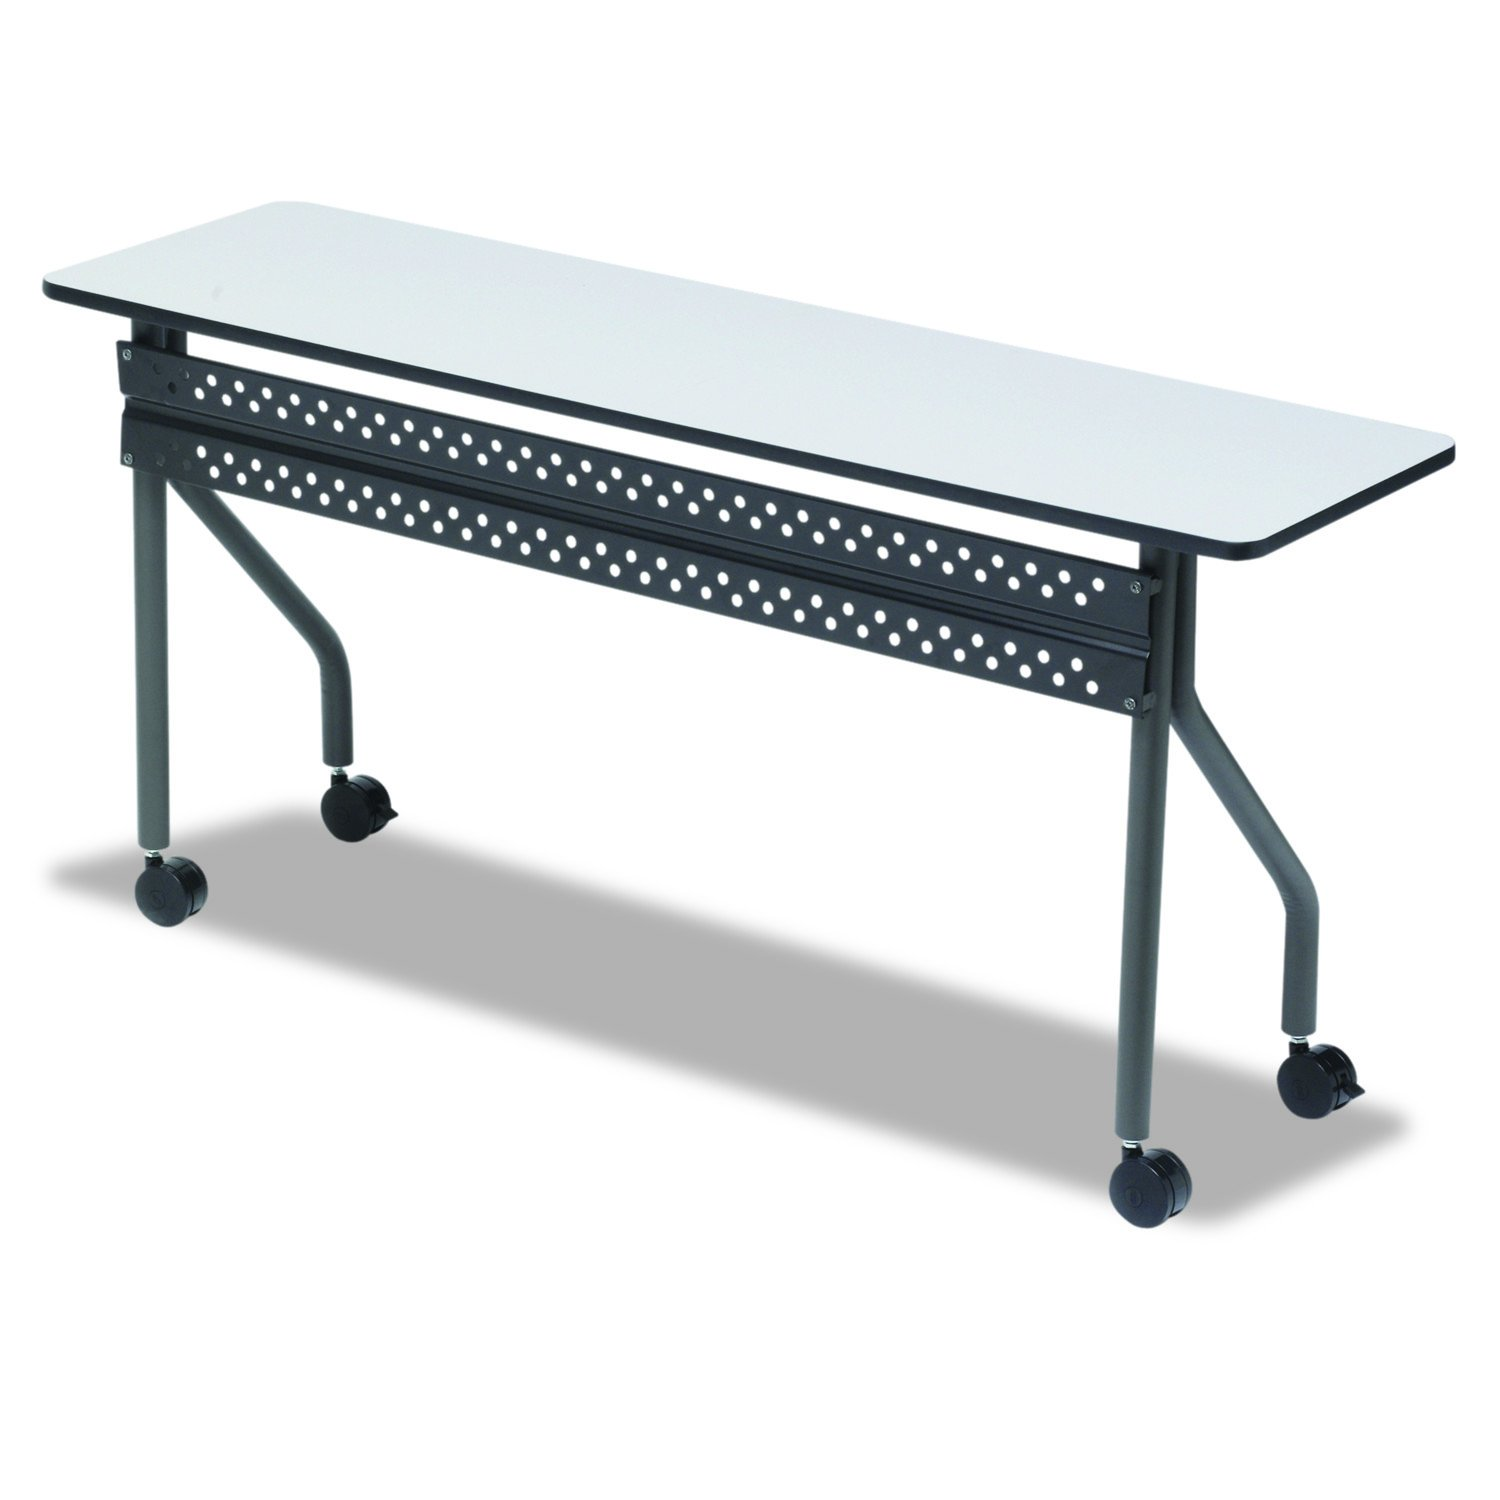 Iceberg 68067 Officeworks online shop Mobile Clearance SALE! Limited time! 72w Table Rectangular Training